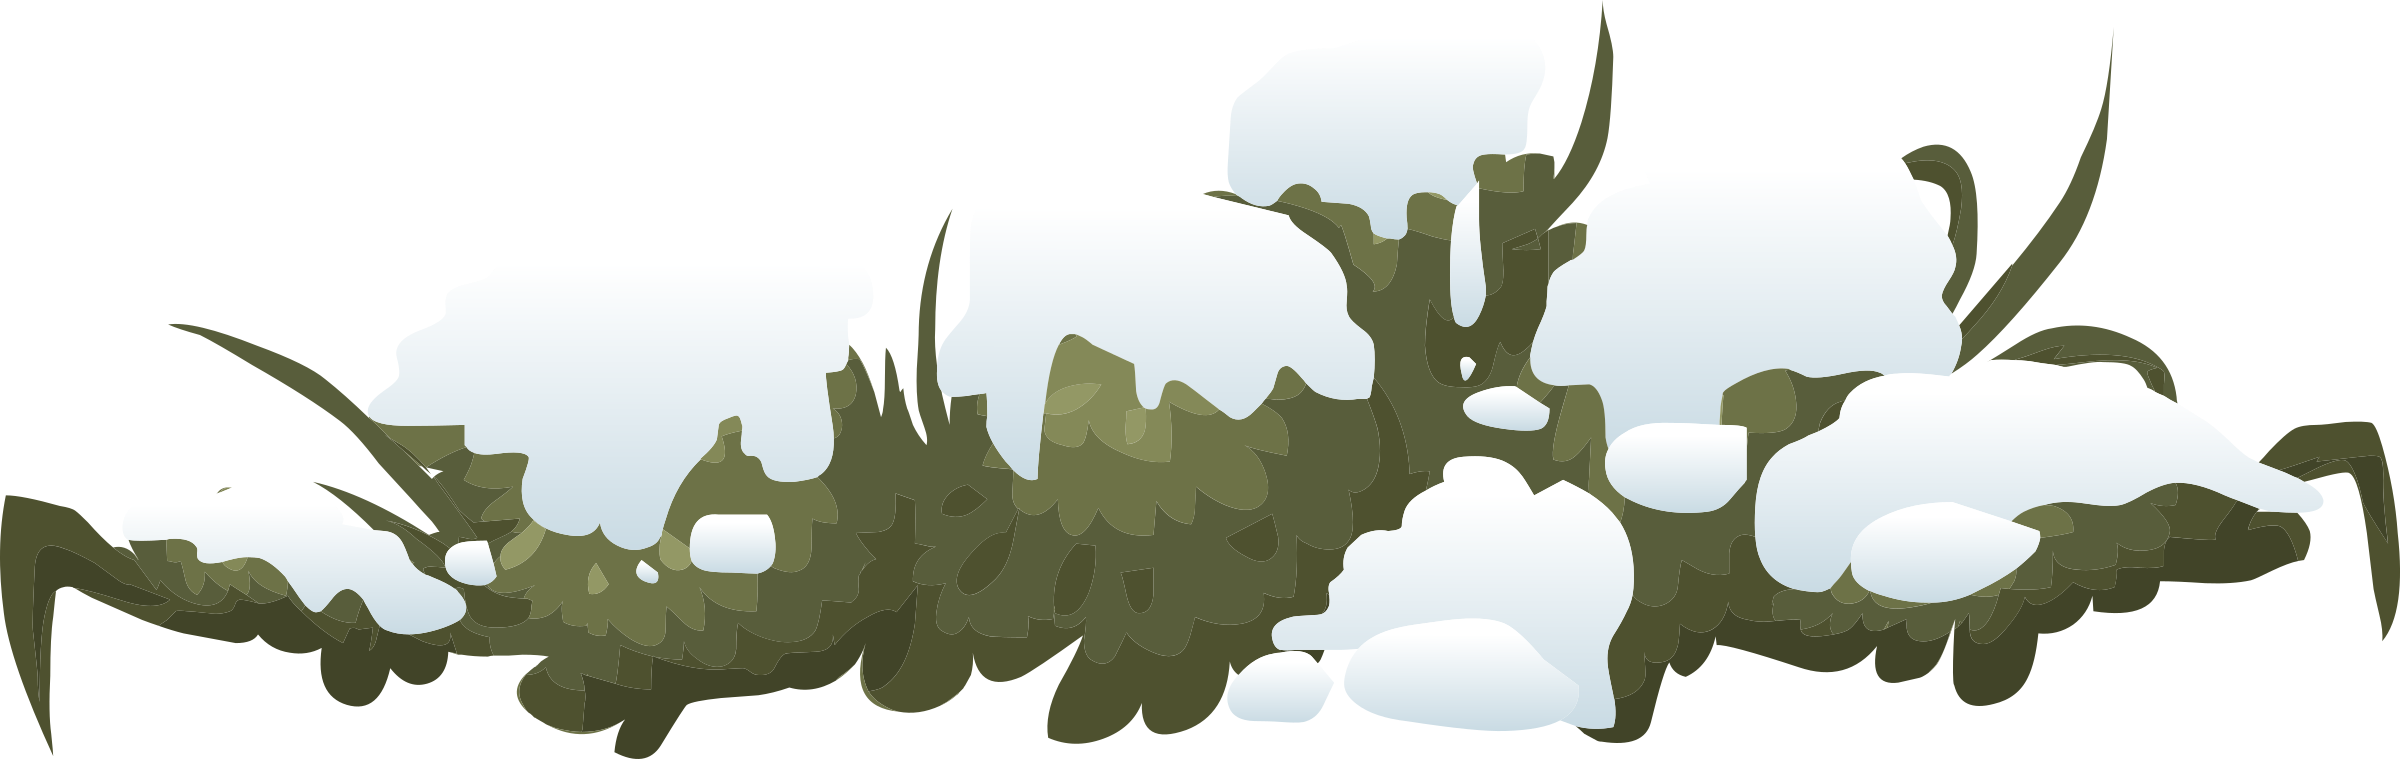 Bush clipart landscape. Alpine snow c al